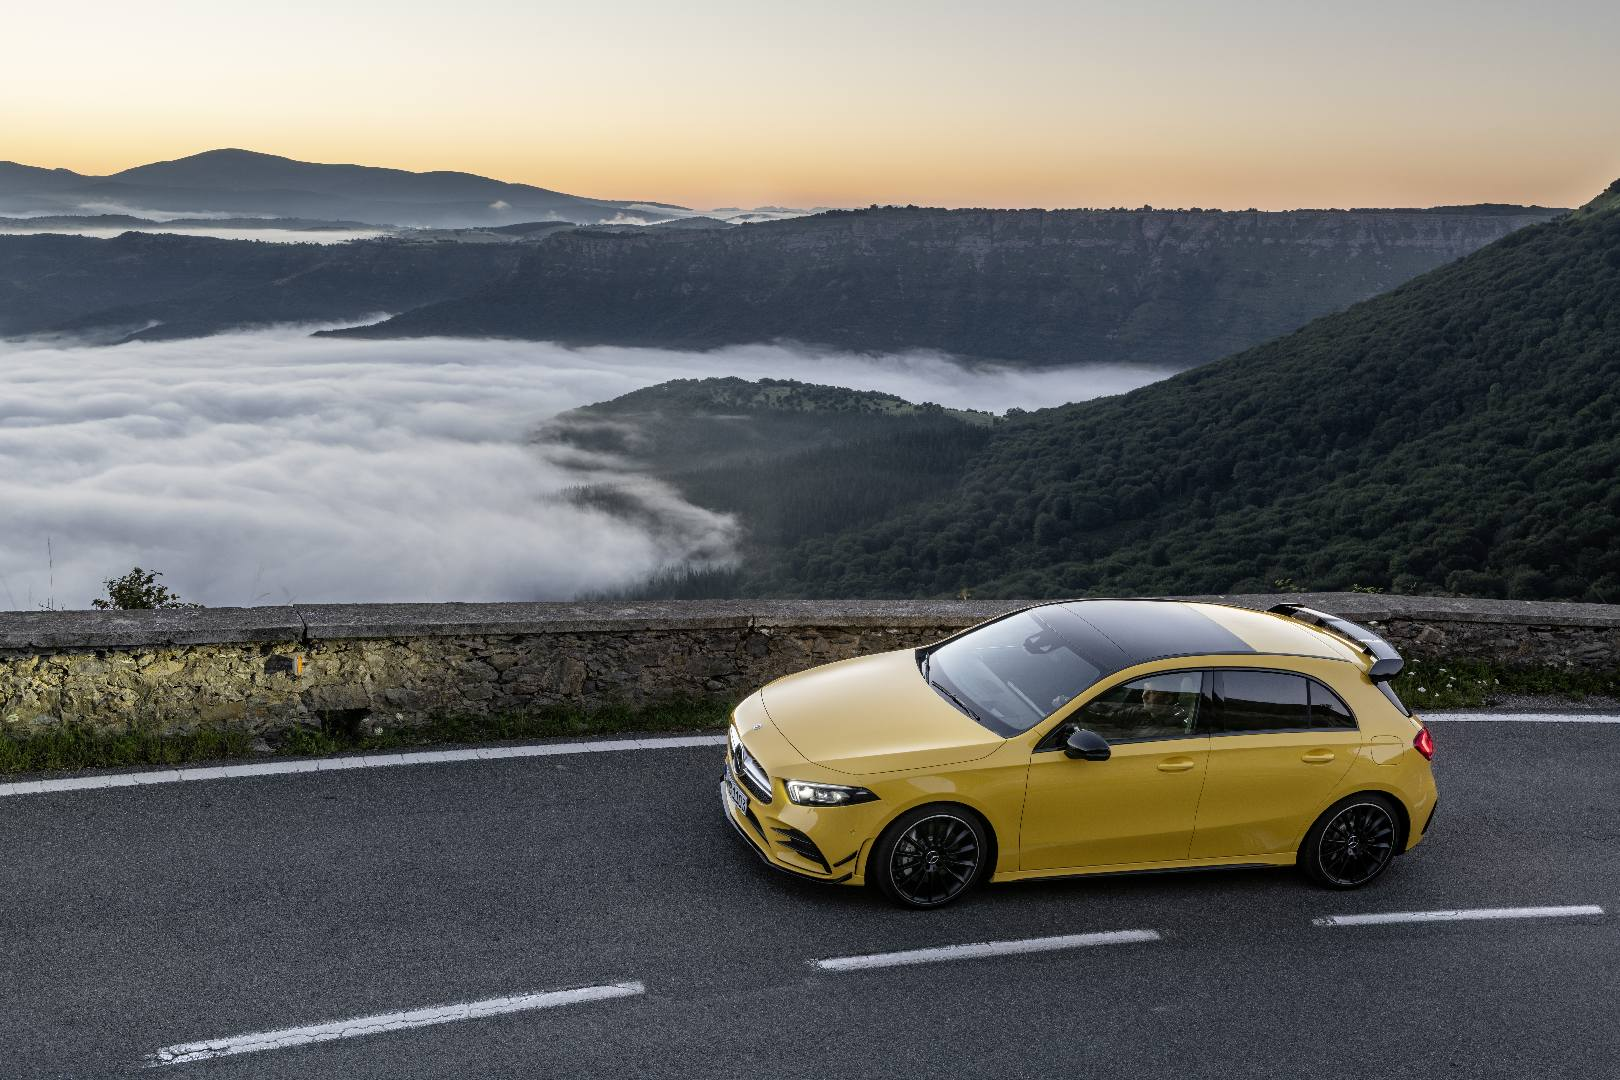 New Mercedes-AMG A 35 REVEALED - 302bhp of entry-level Mercedes AMG